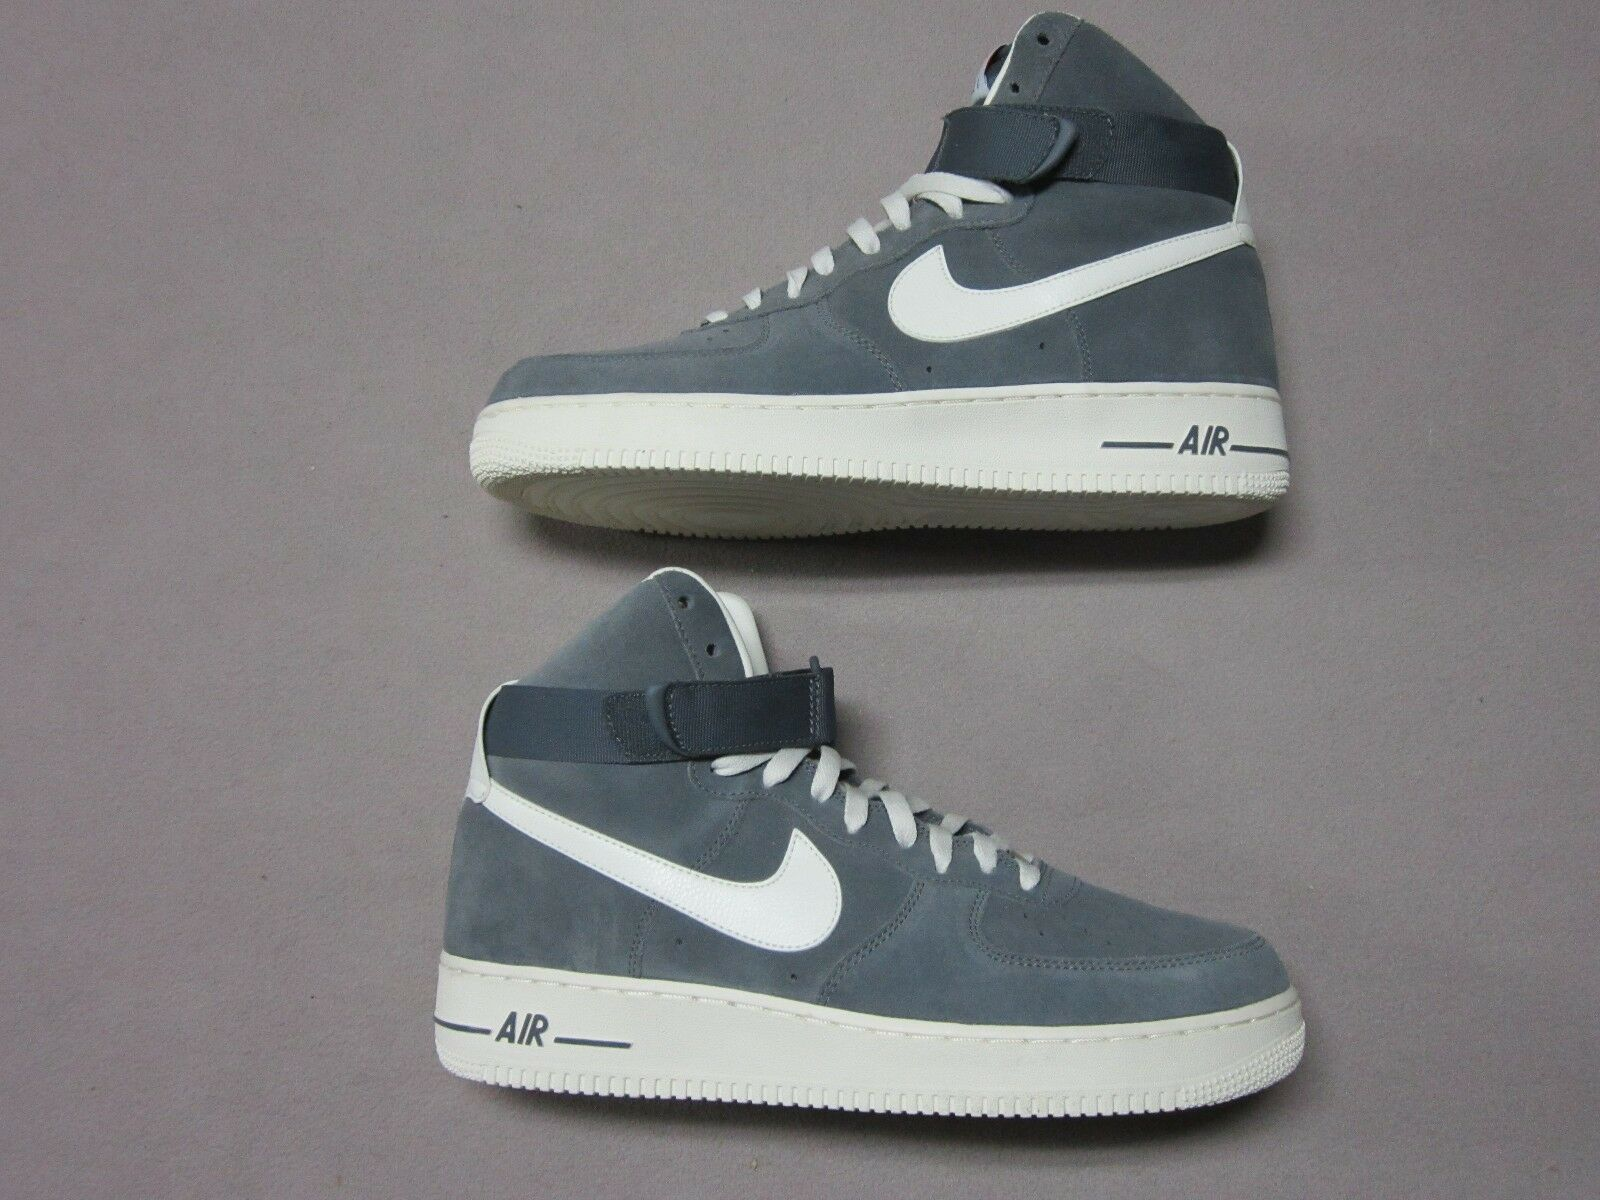 NIKE RARE AIR FORCE 1 '82 WOLF GREY & WHITE SNEAKERS SHOES SIZE 11